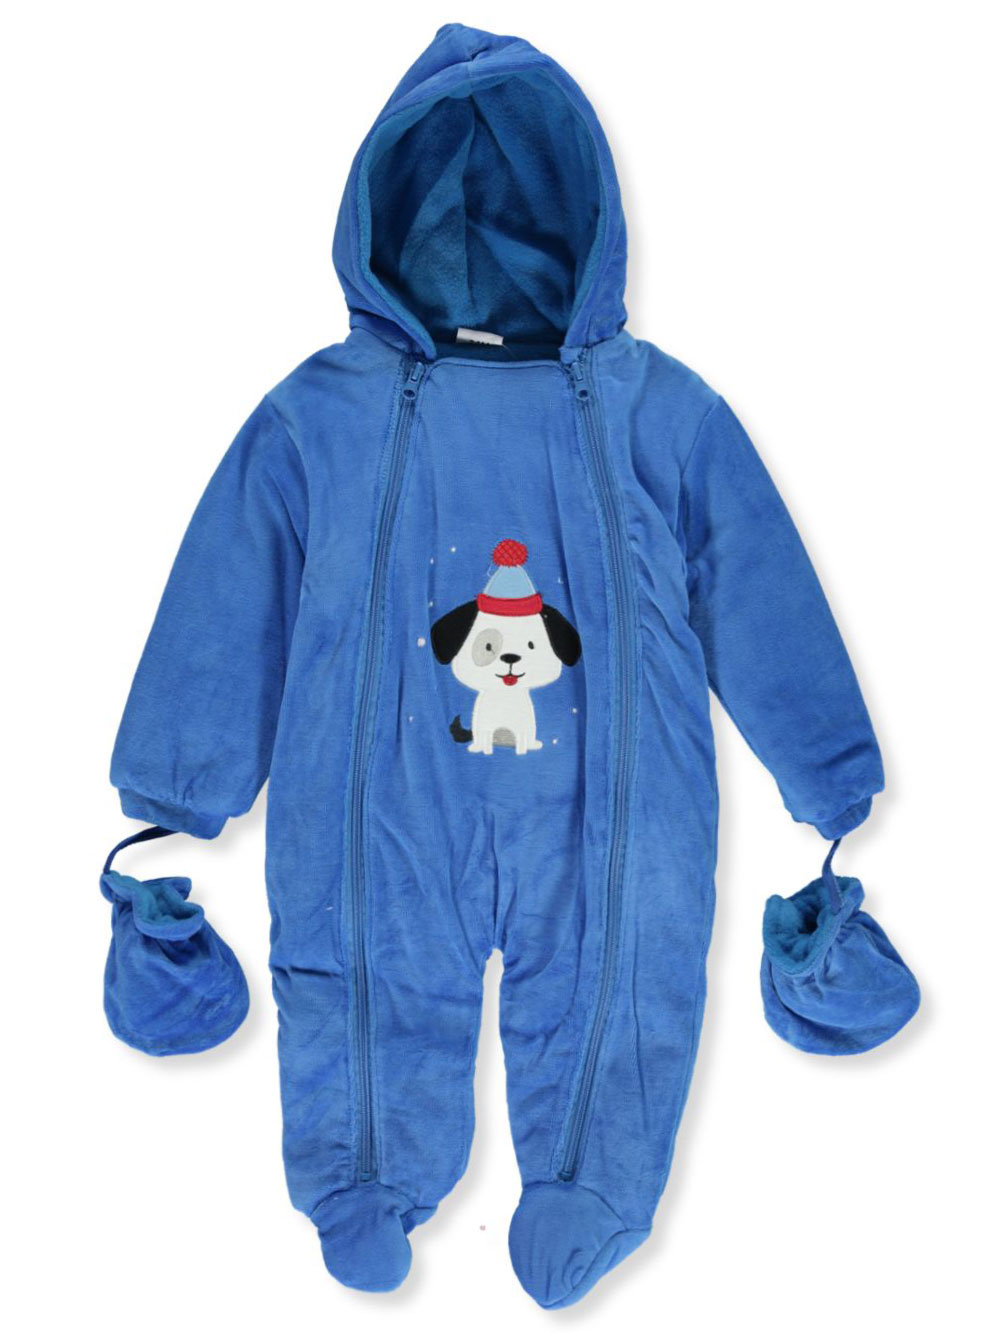 Microfleece Hooded Pram Suit with Mittens